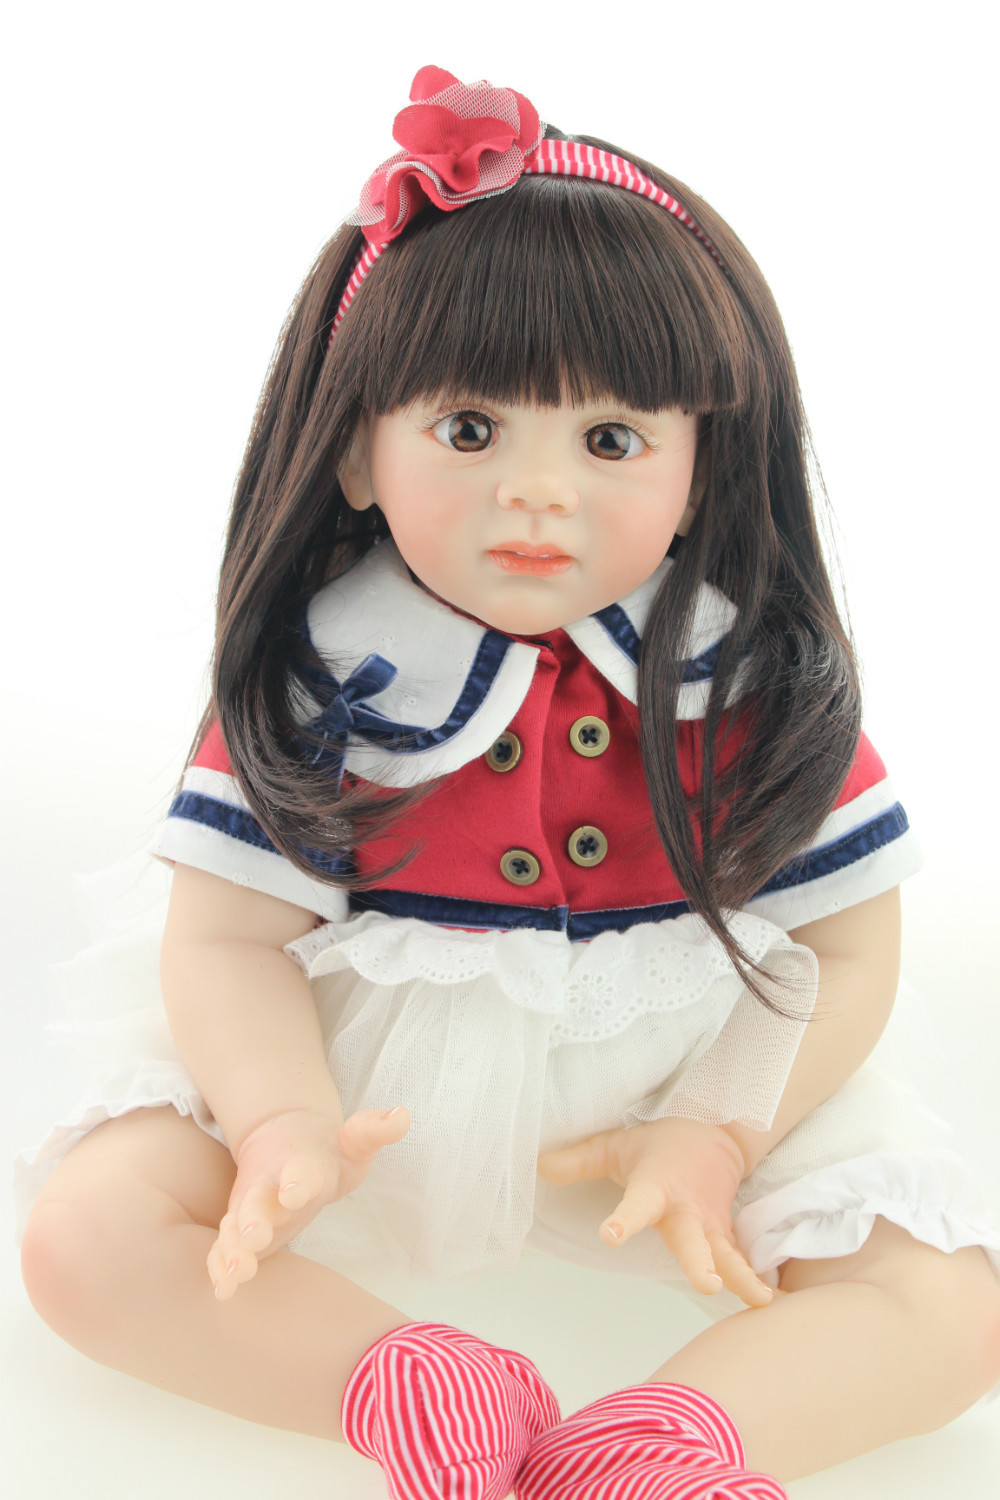 NPK 2017 new design 24inch Reborn Toddler baby doll Fridolin lifelike sweet girl real gentle touch 2015 new design 24inch reborn toddler baby doll rooted human hair fridolin lifelike sweet girl real gentle touch